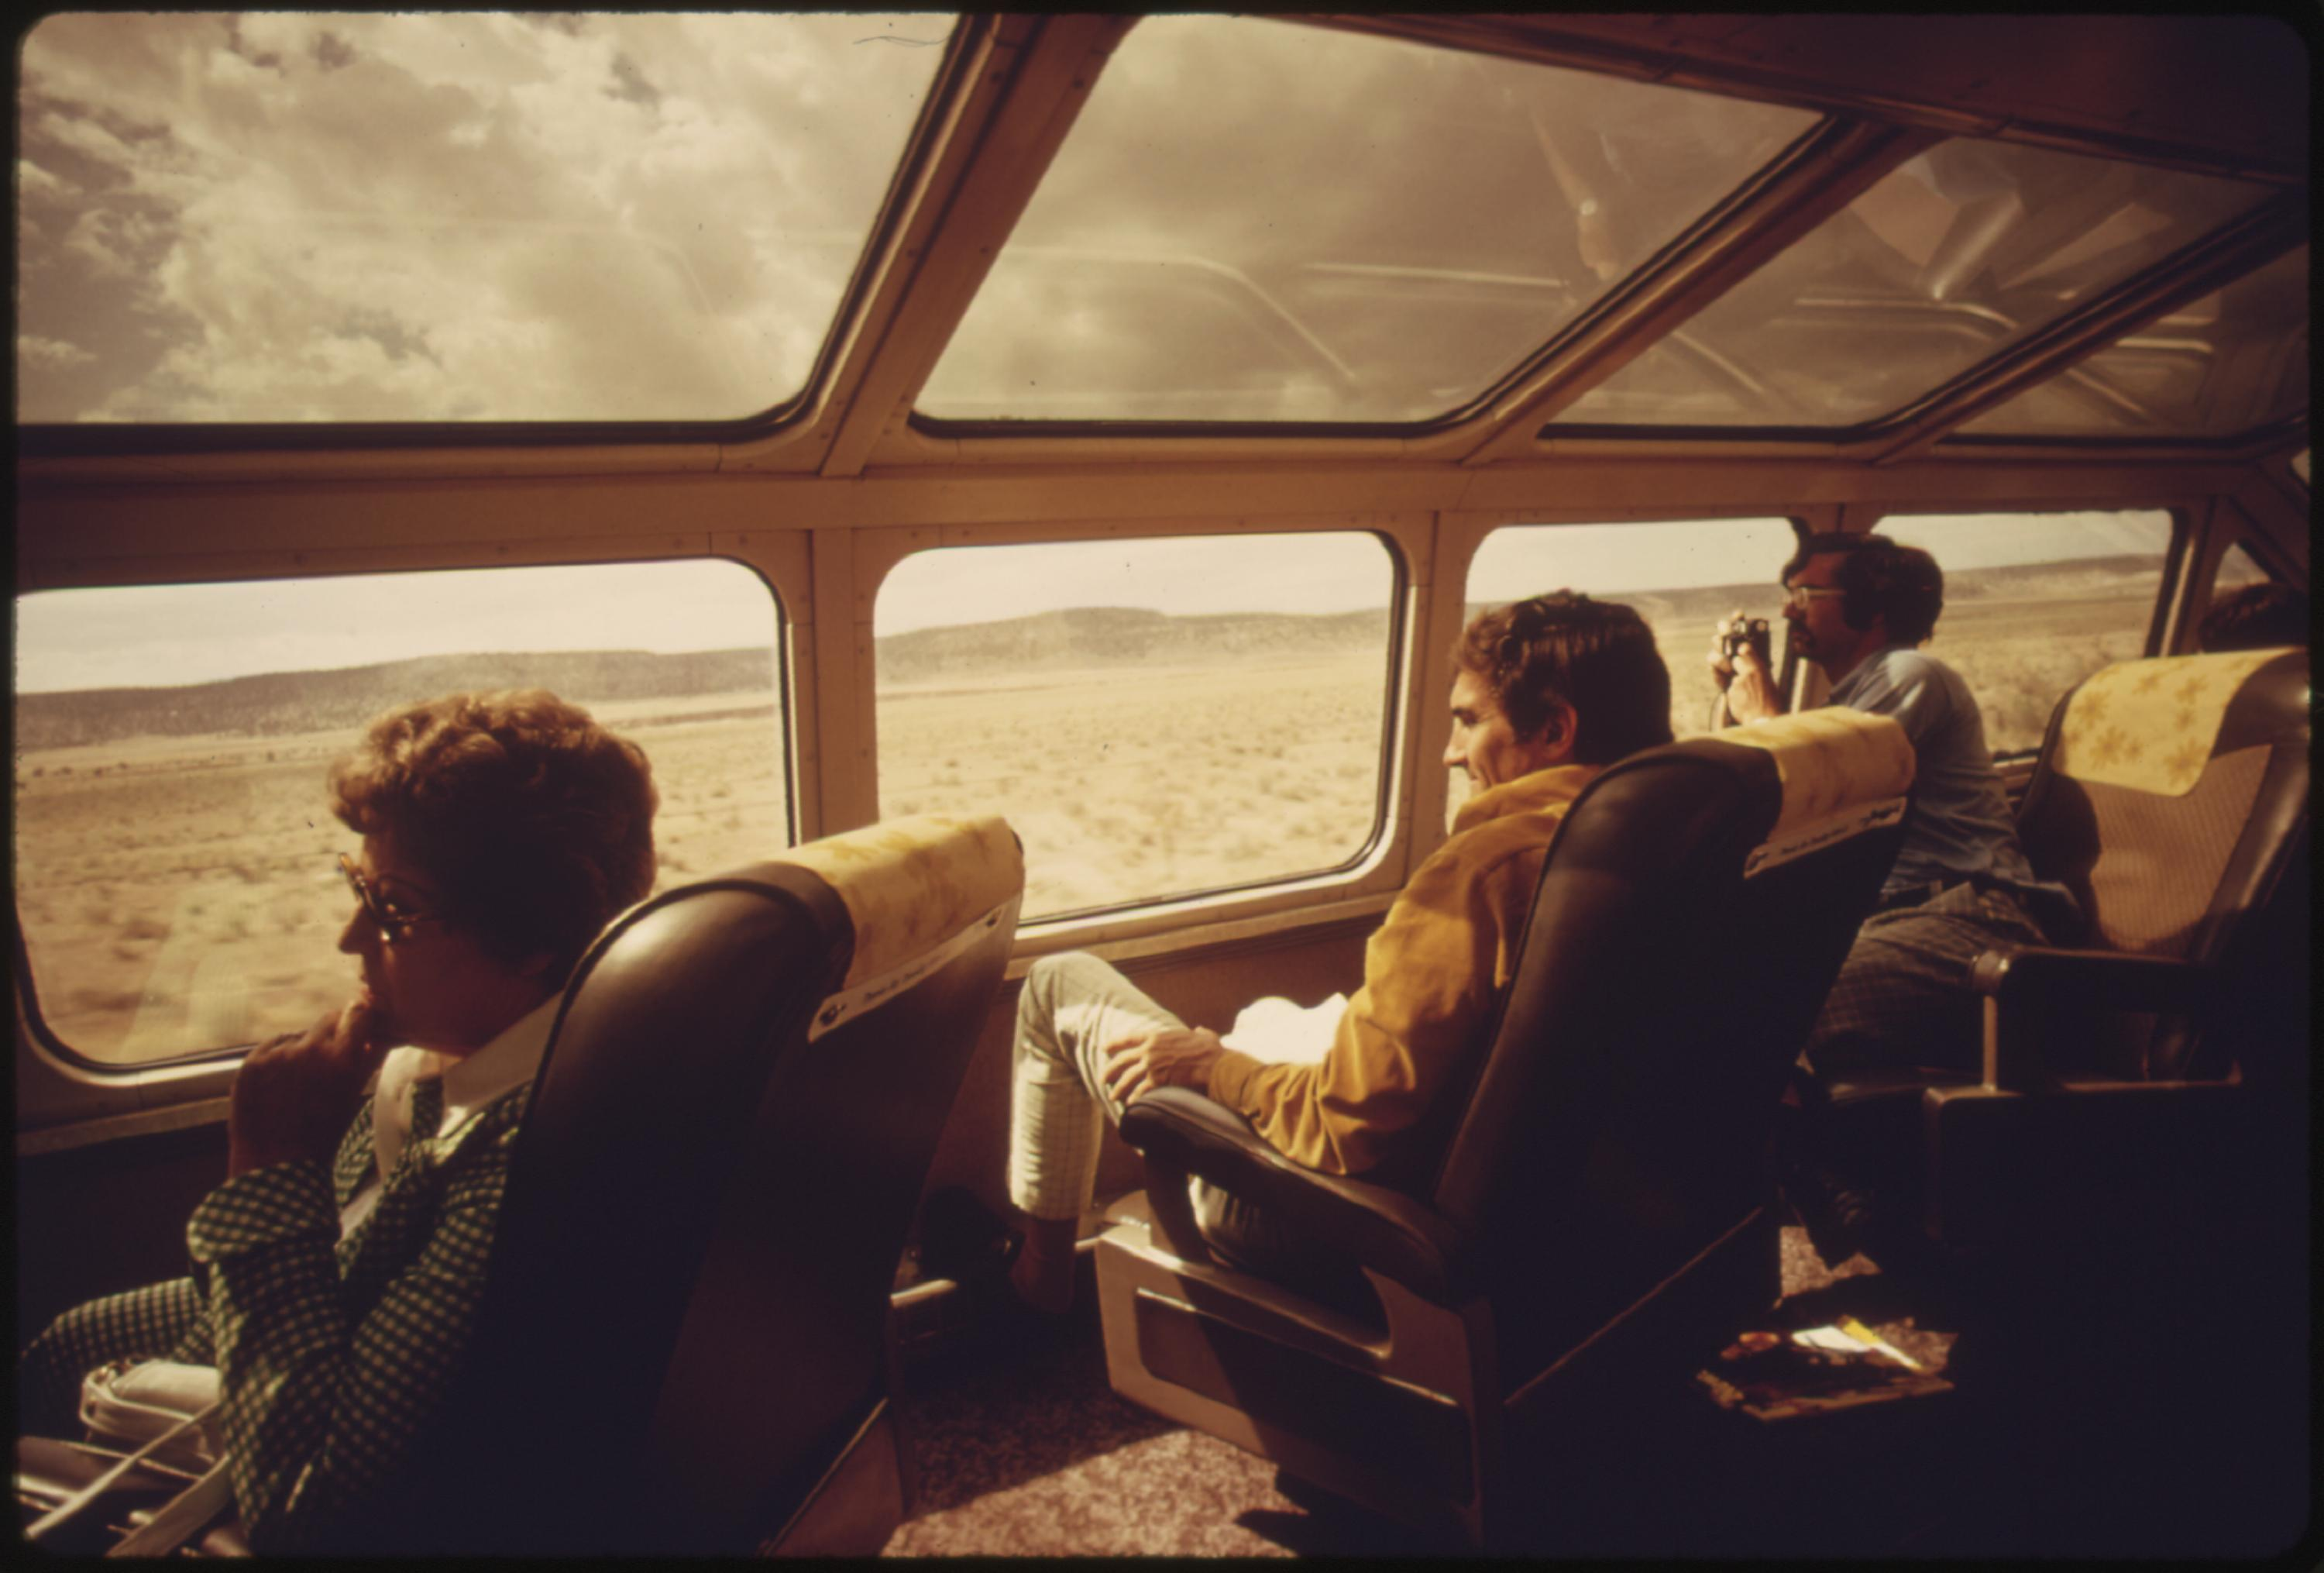 The dome car on Amtrak trains is a popular place for passengers who want to watch the scenery unfold or take pictures of it to show the folks back home, June 1974